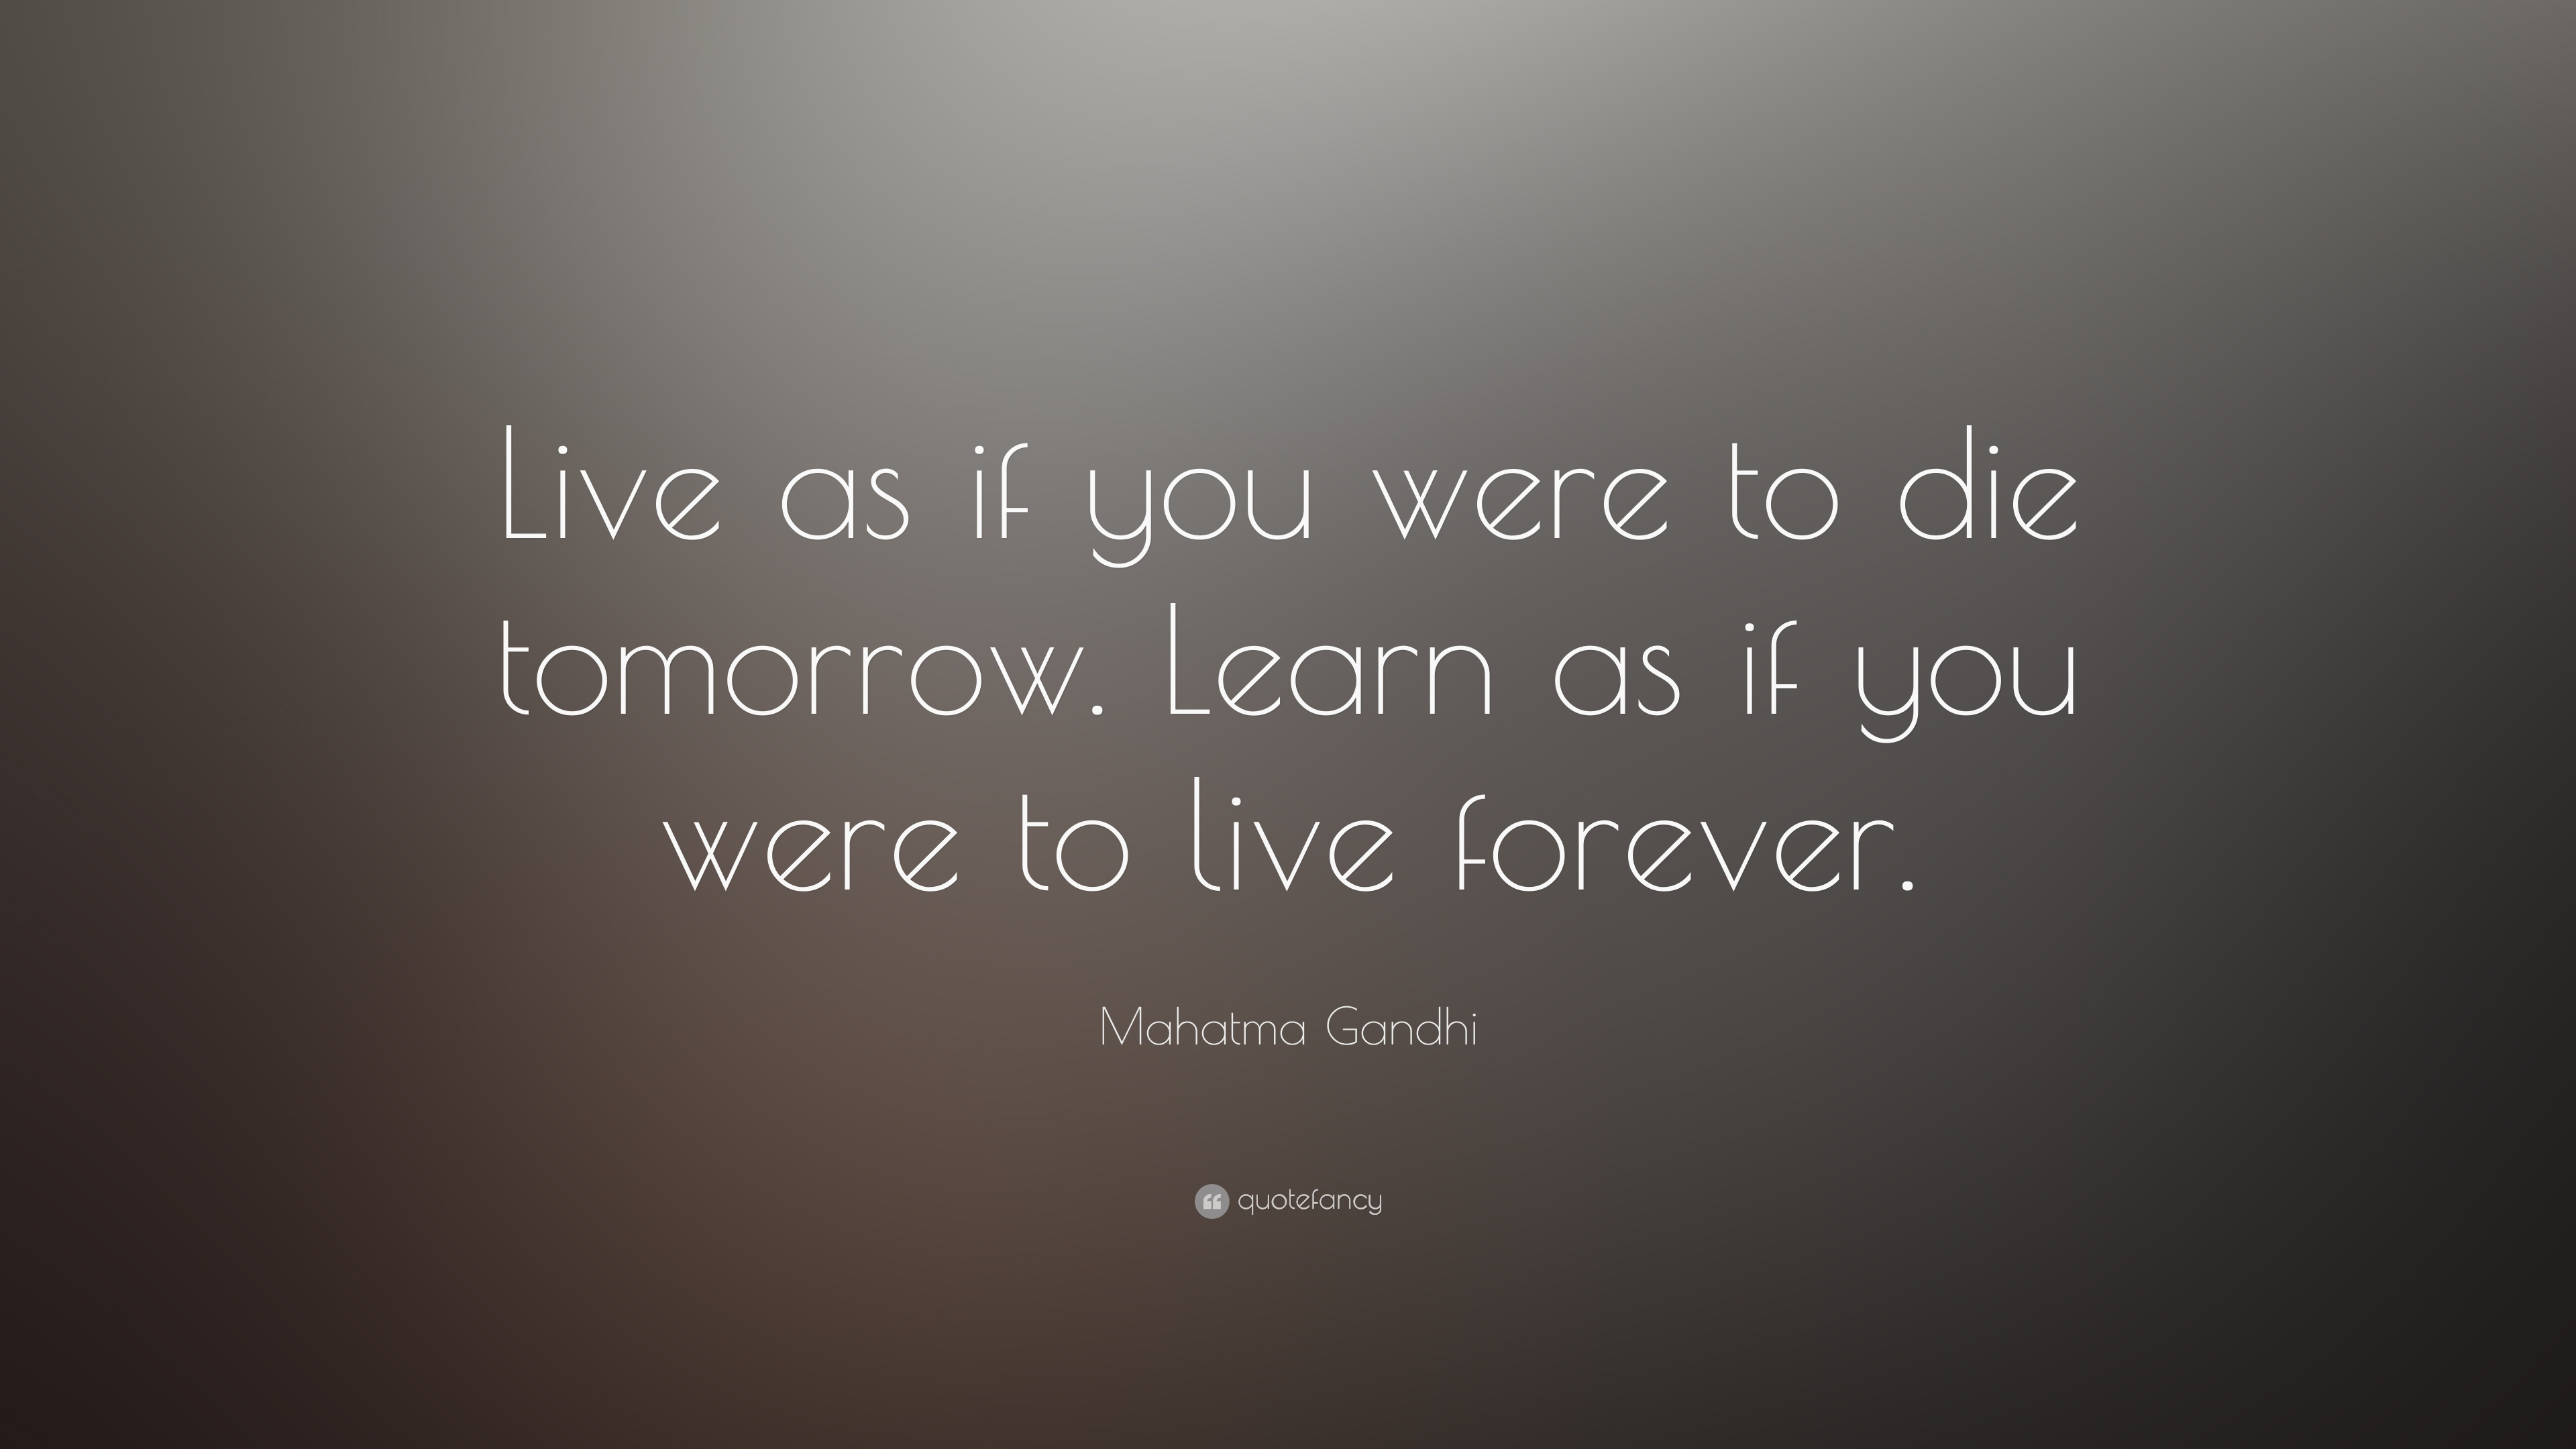 Were to Die Tomorrow as If You Live